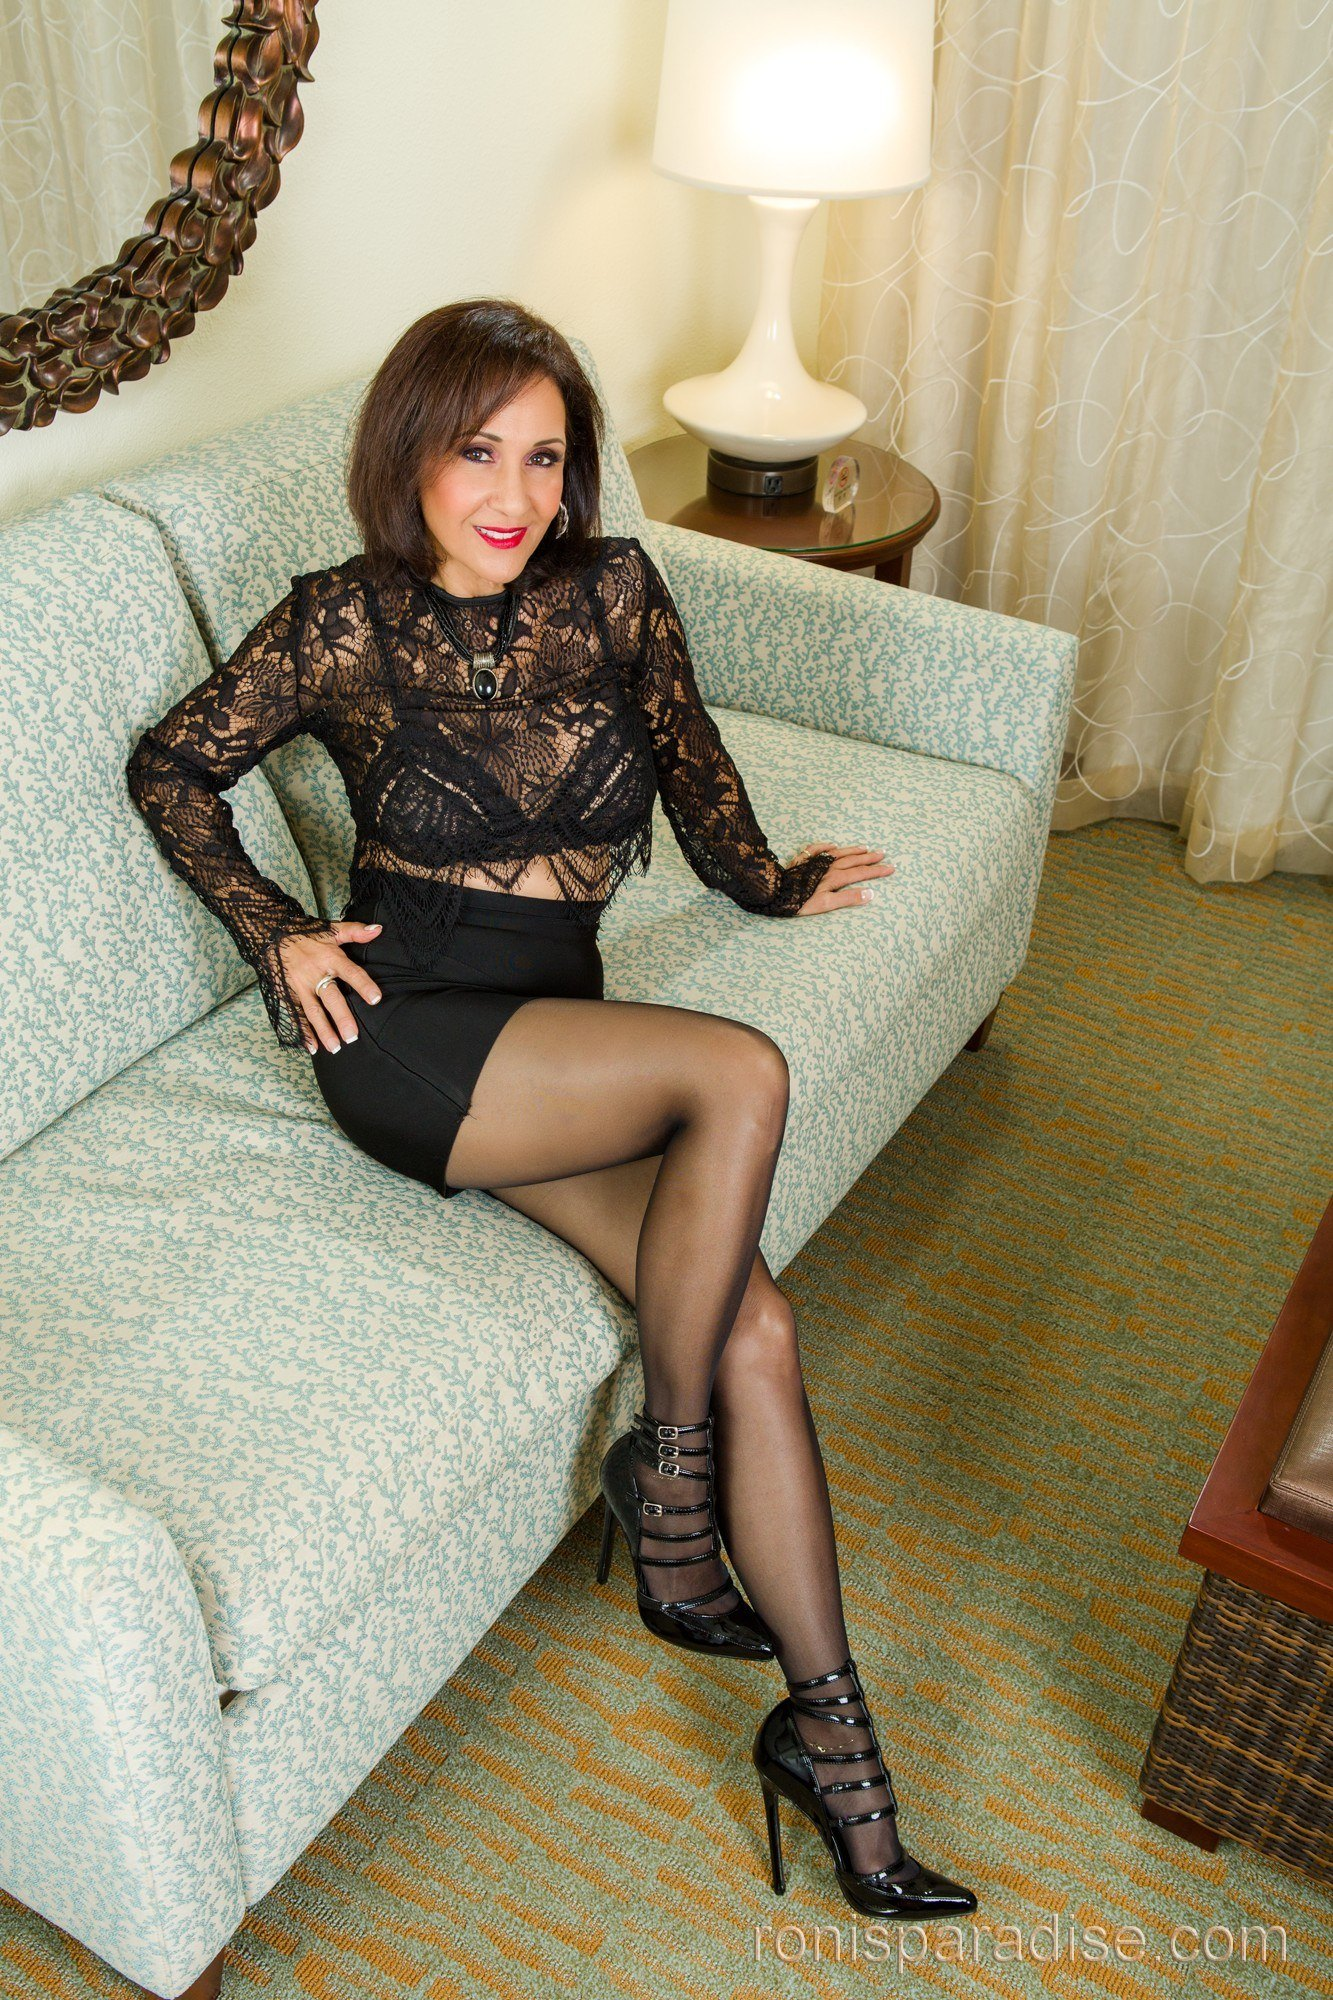 Ronis Paradise Milf Cool a milf in black from jan